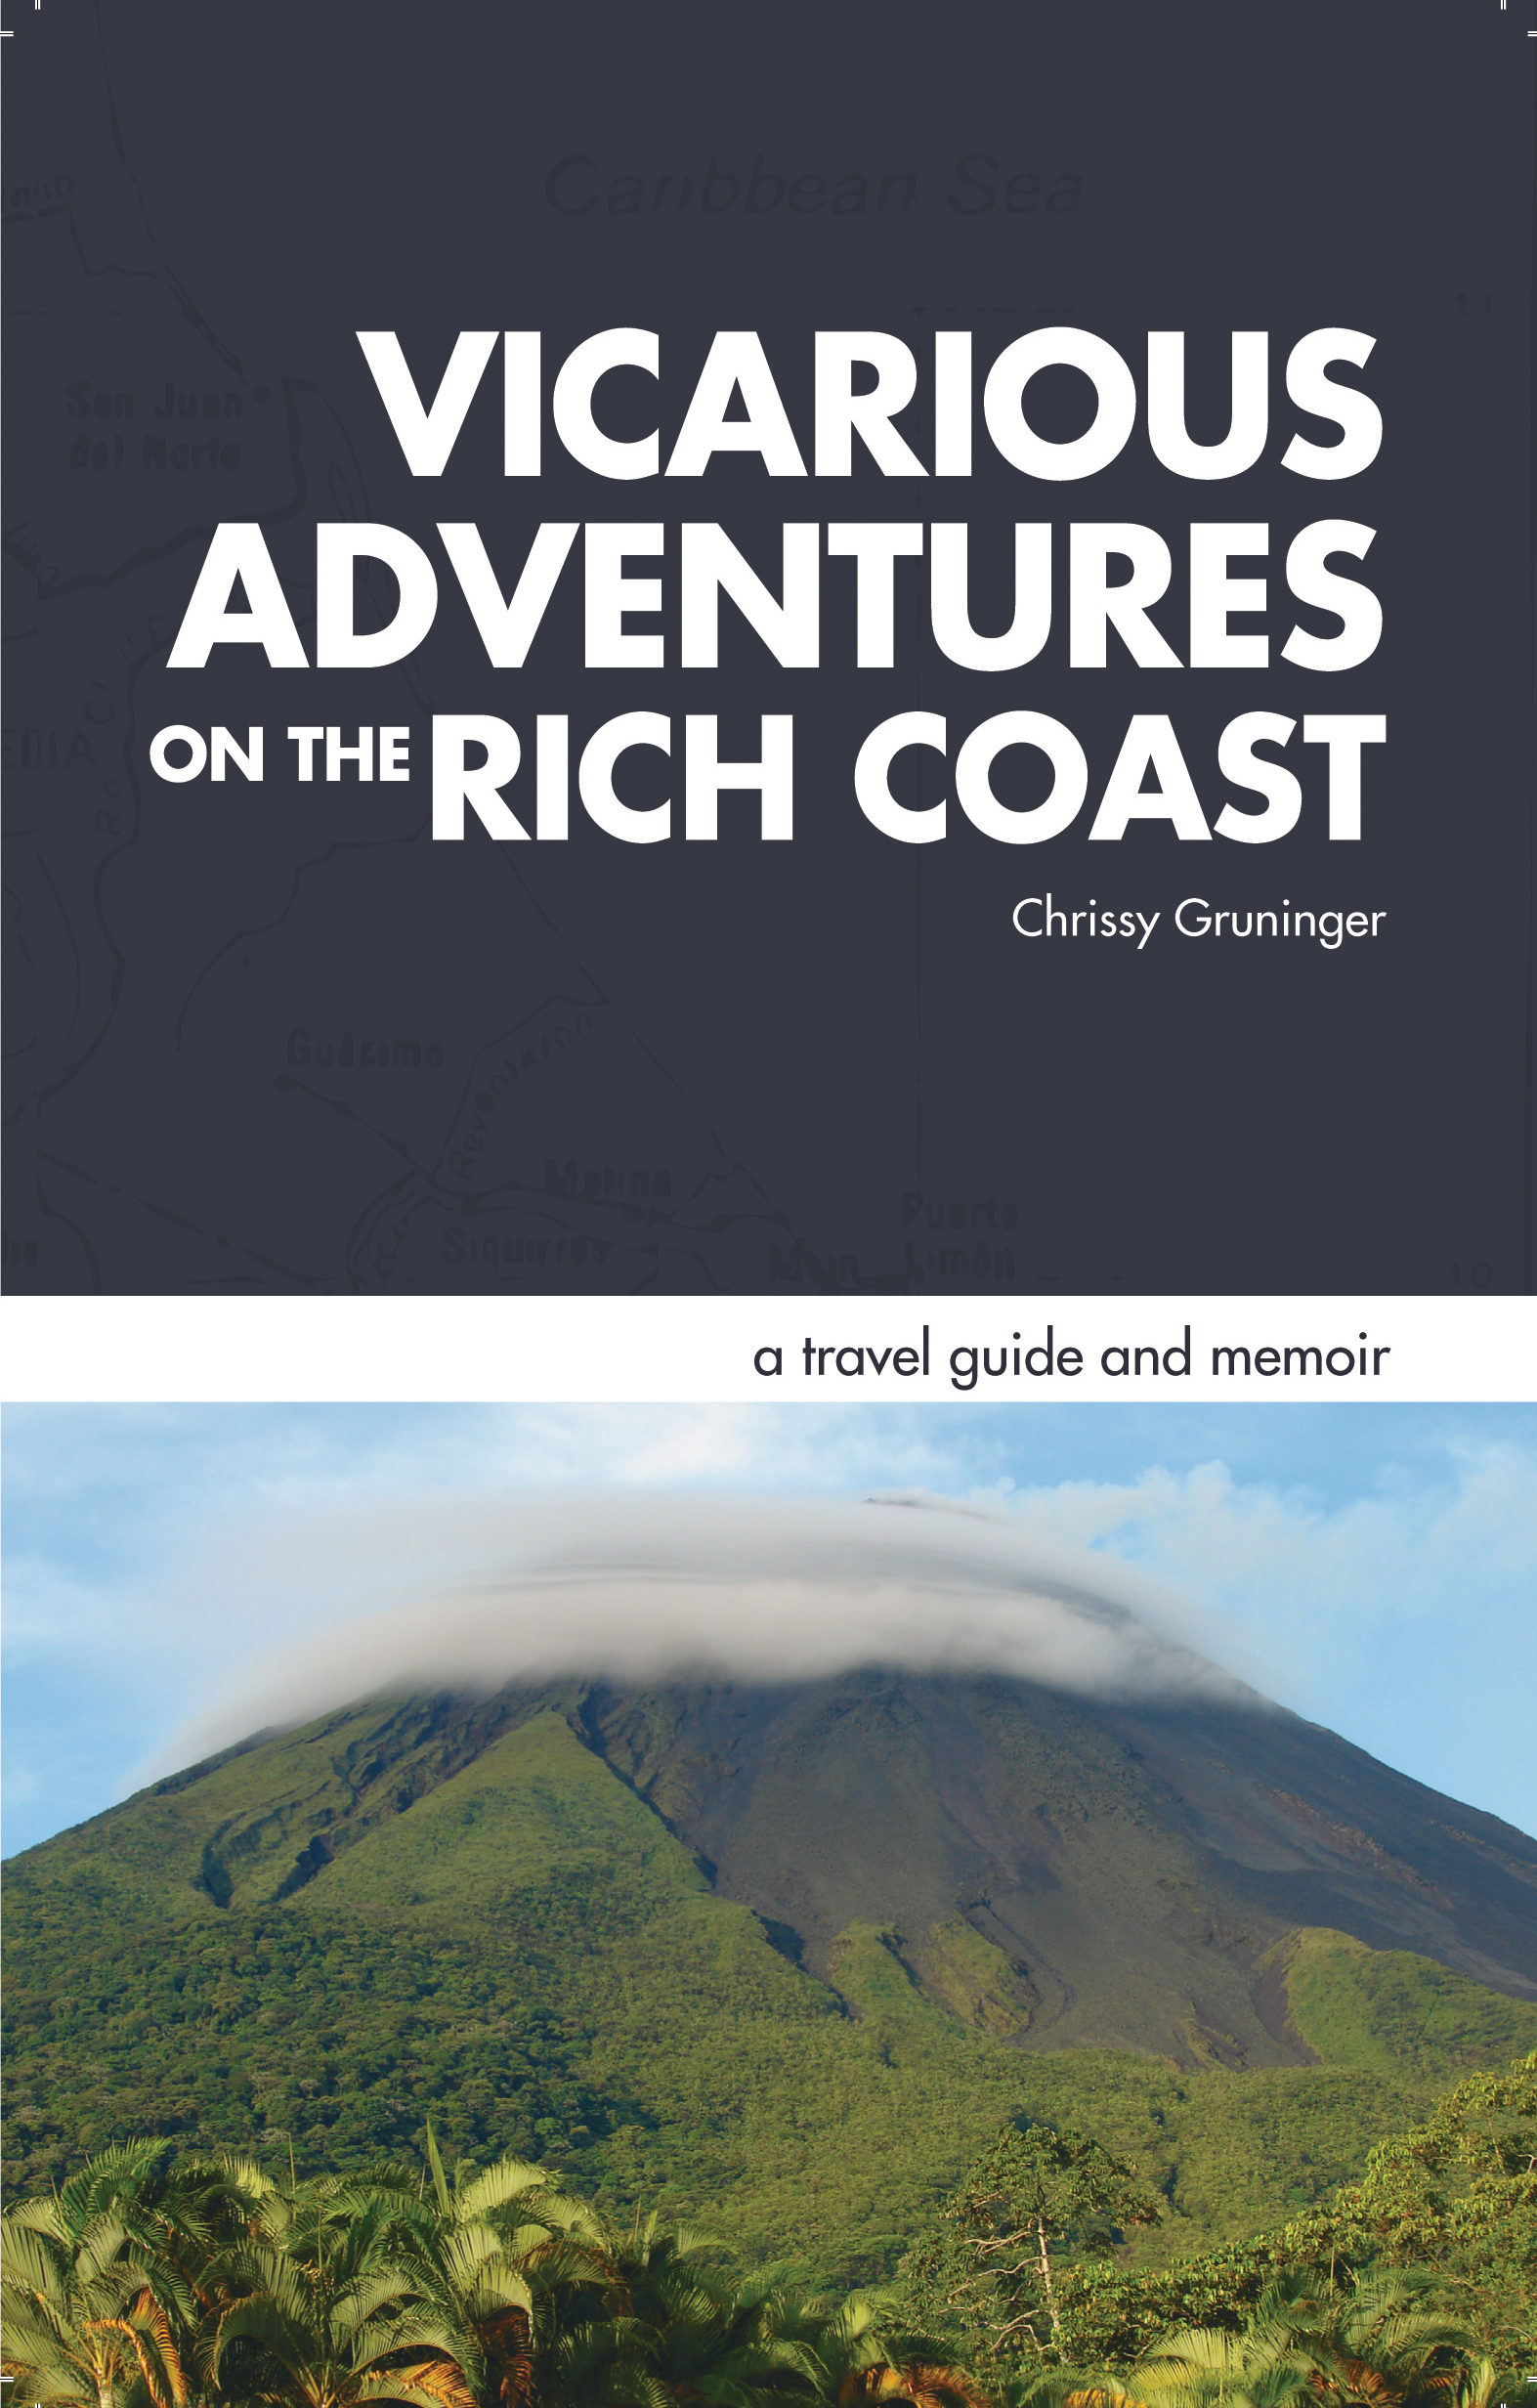 Vicarious Adventures on the Rich Coast